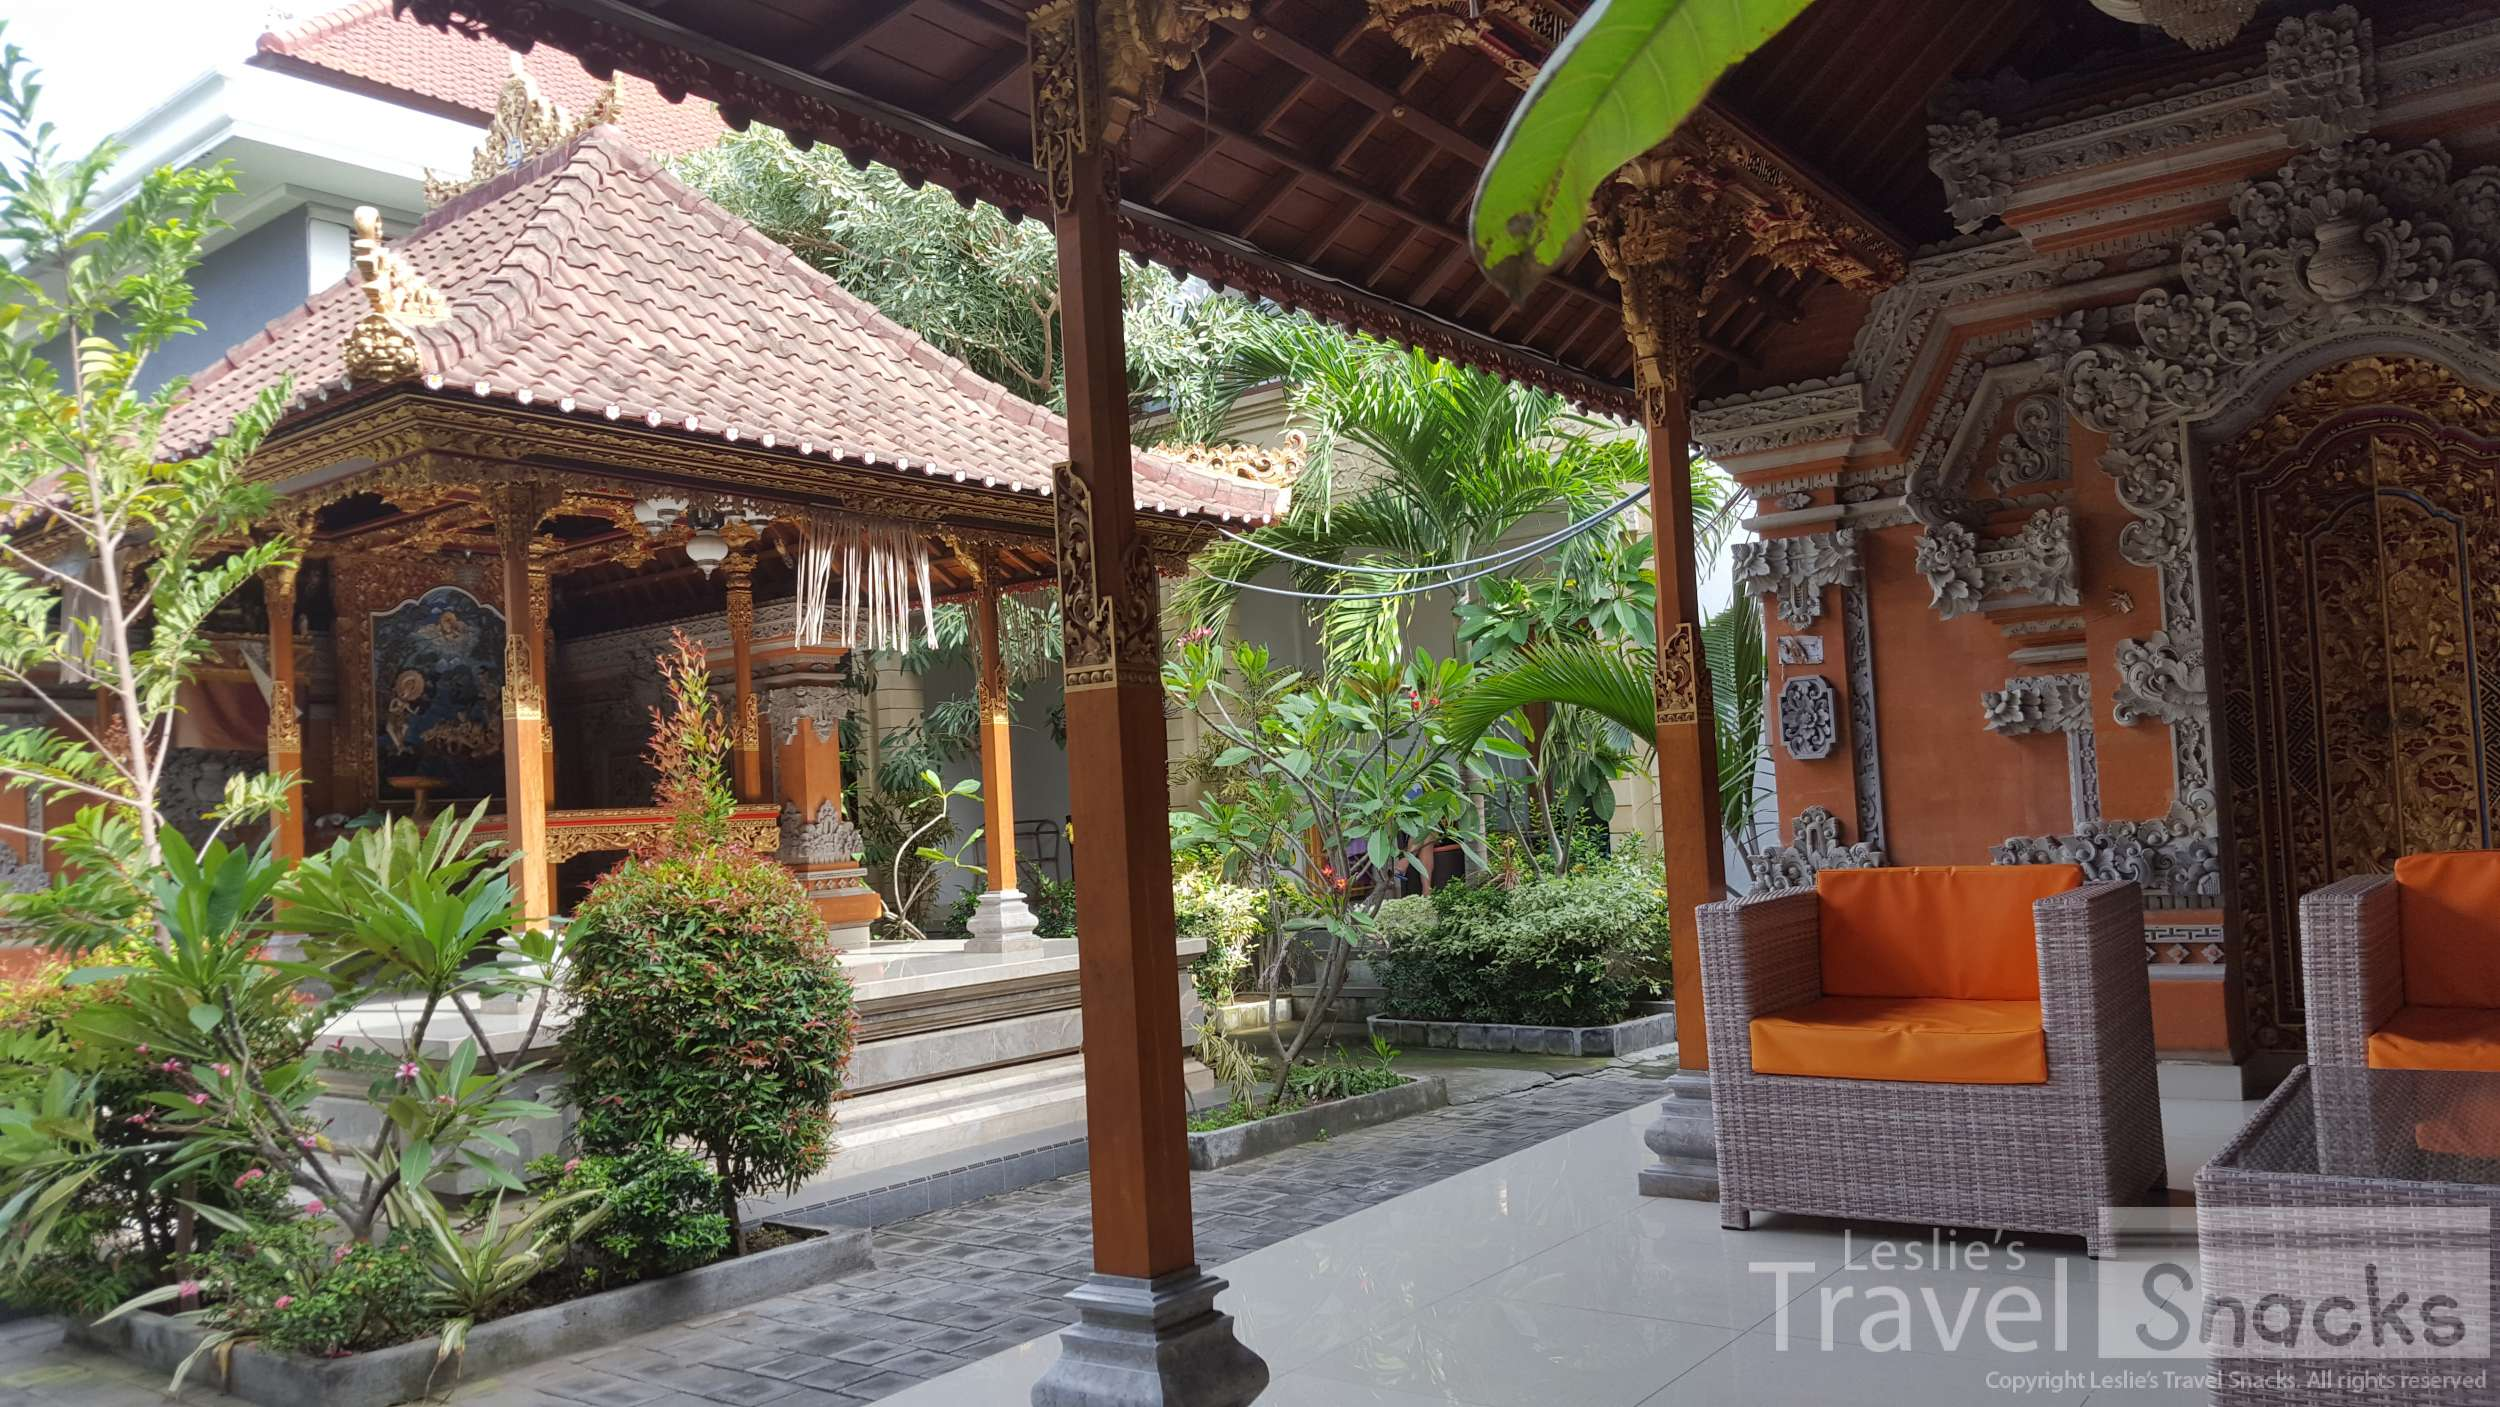 The Kutaya has family temples on the hotel grounds. It's very pretty and very close to the airport.